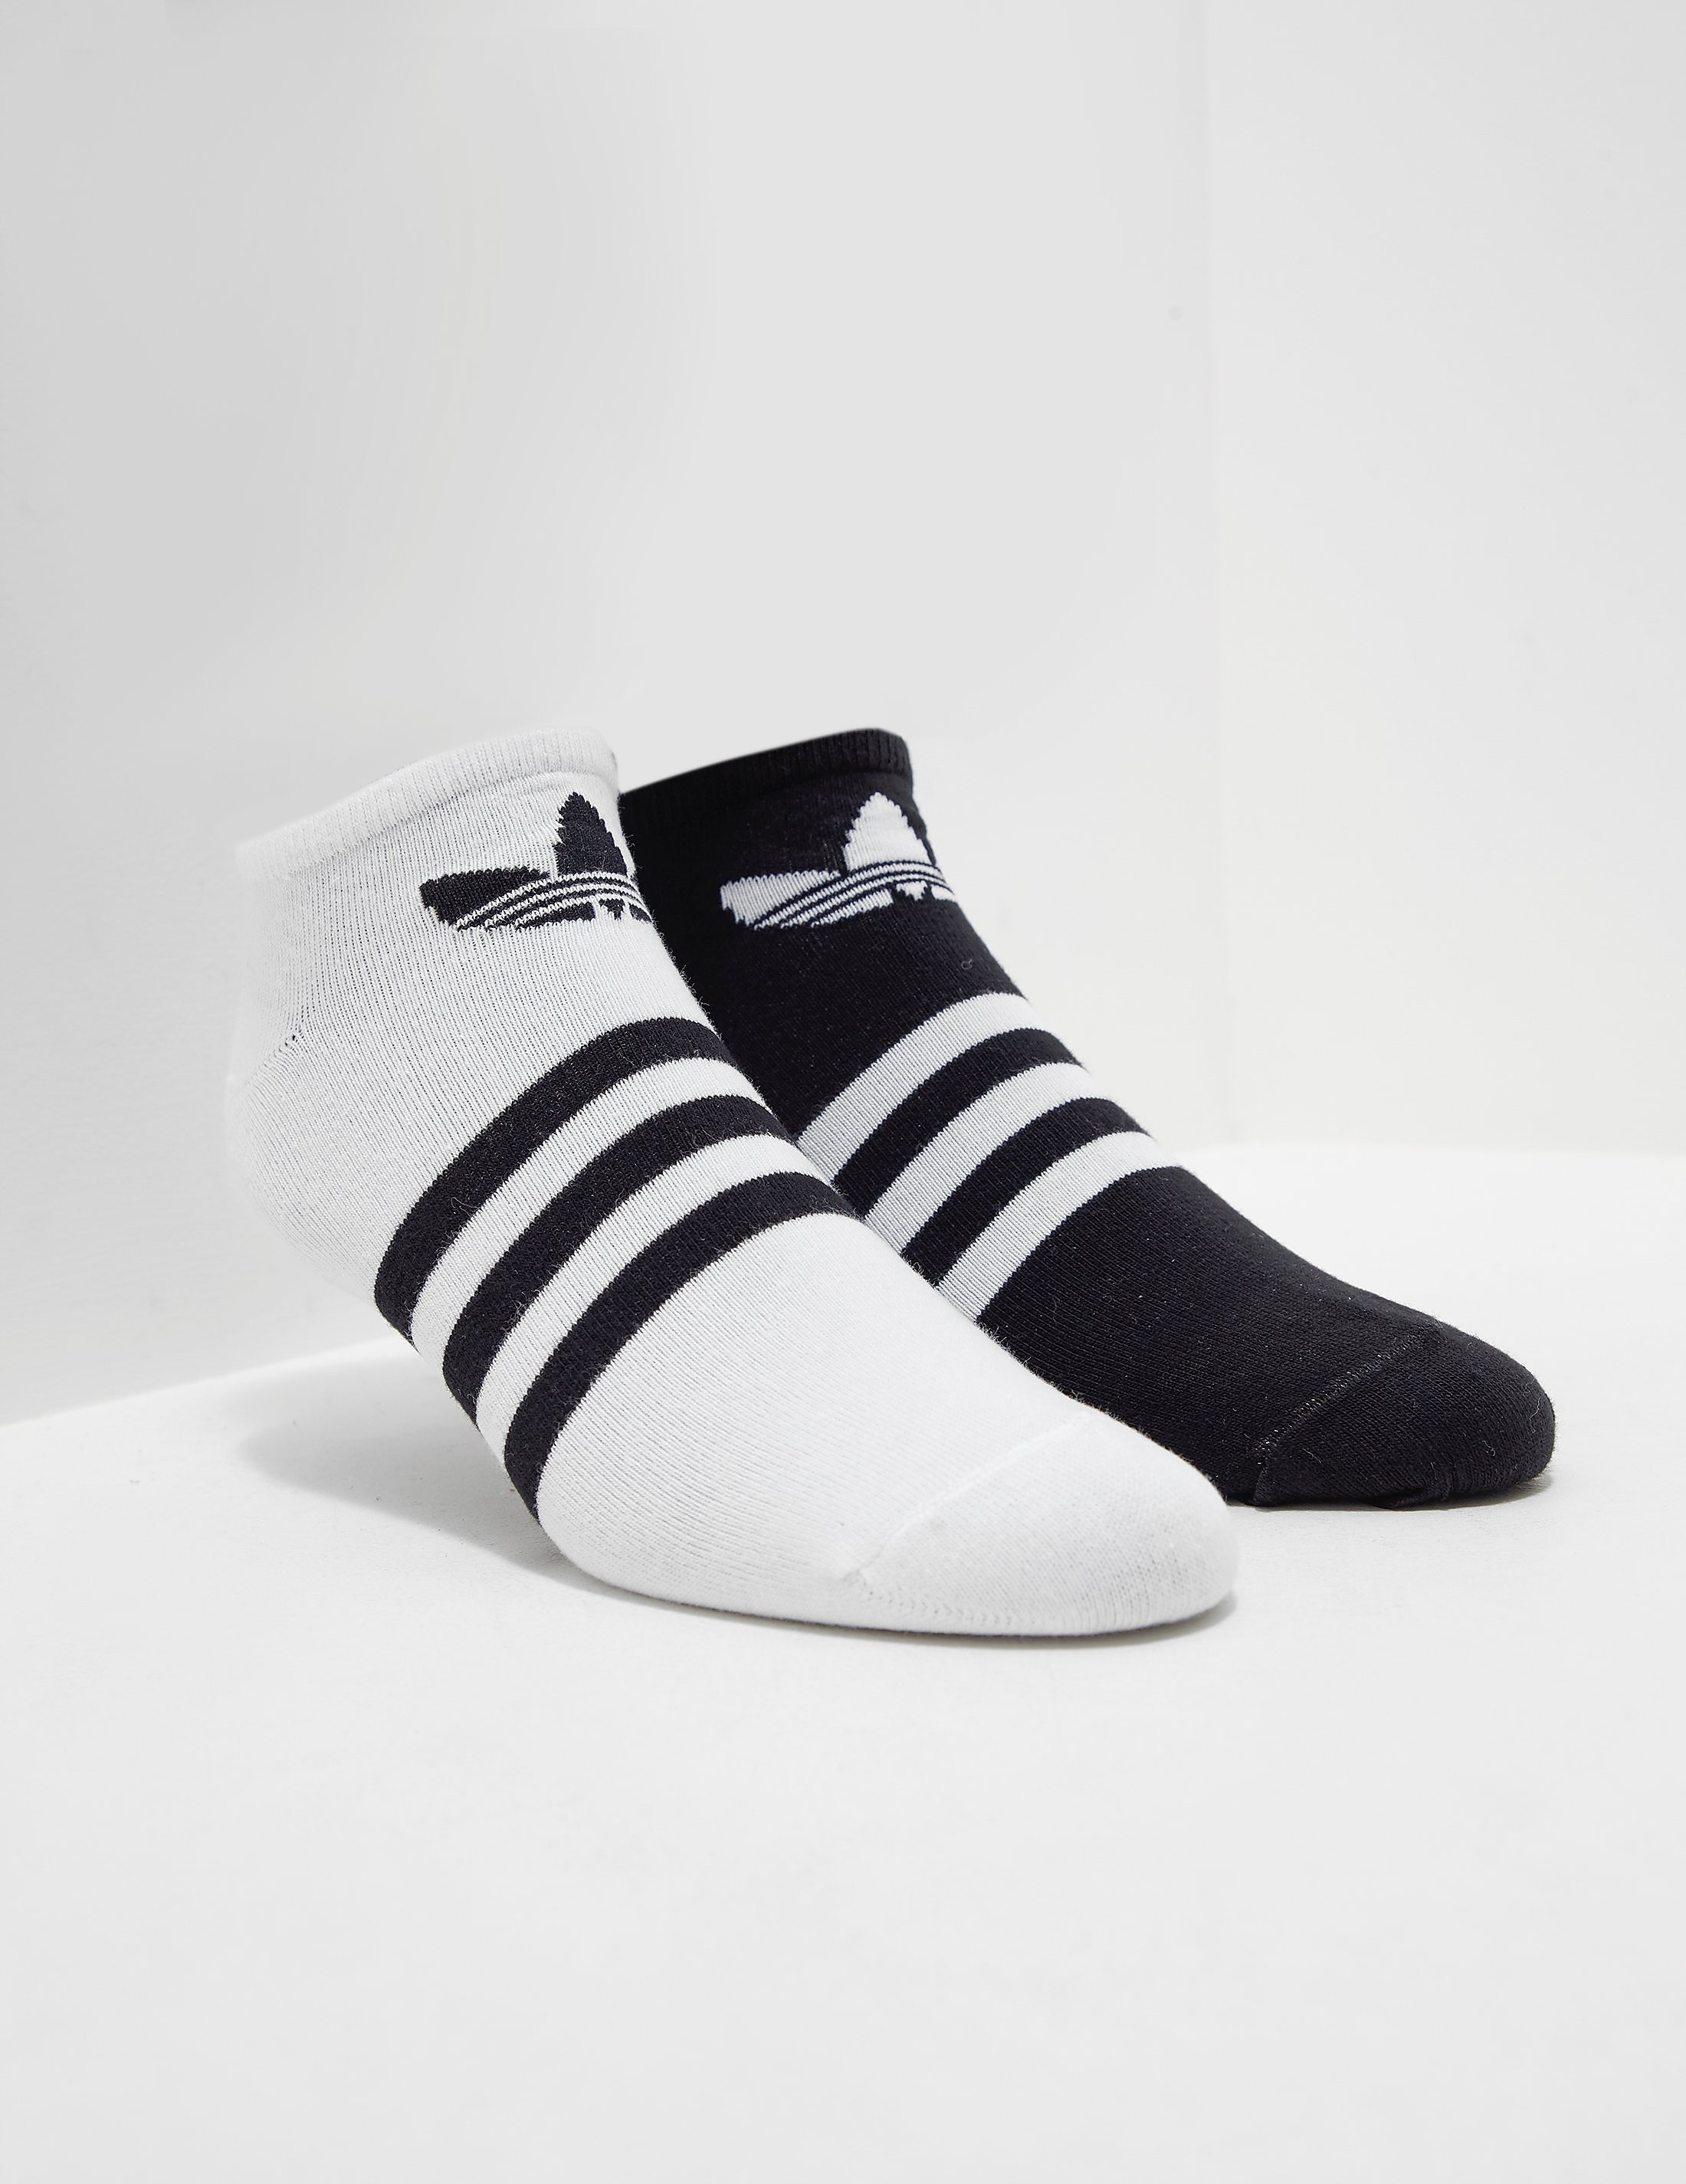 adidas Originals 2-Pack Trainer Socks